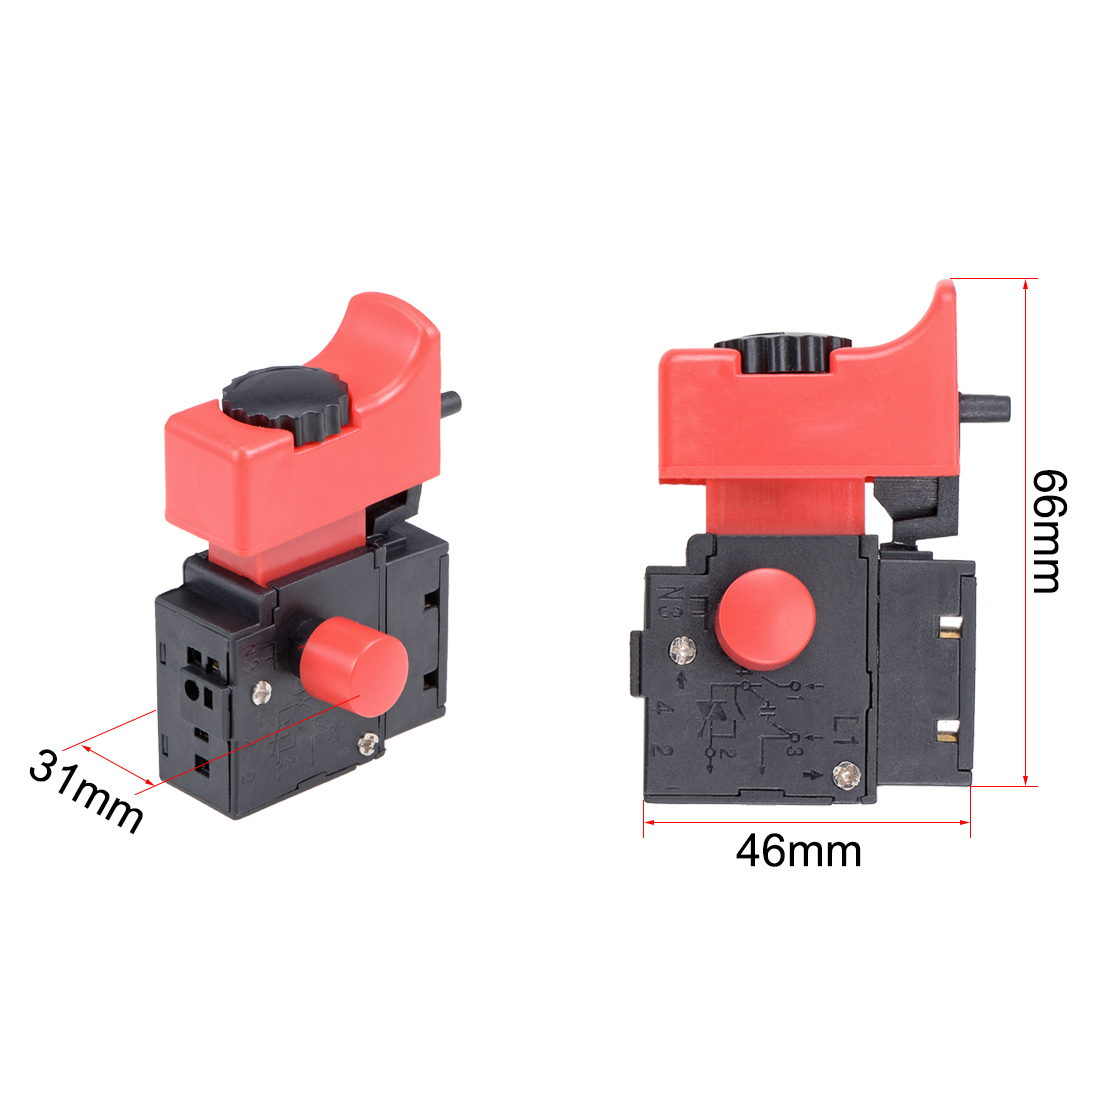 Trigger Switch FA2-6/IBEK Electric Drill Hammer 250V/6A Tool Power Speed Control Push Button Switch - image 3 of 5